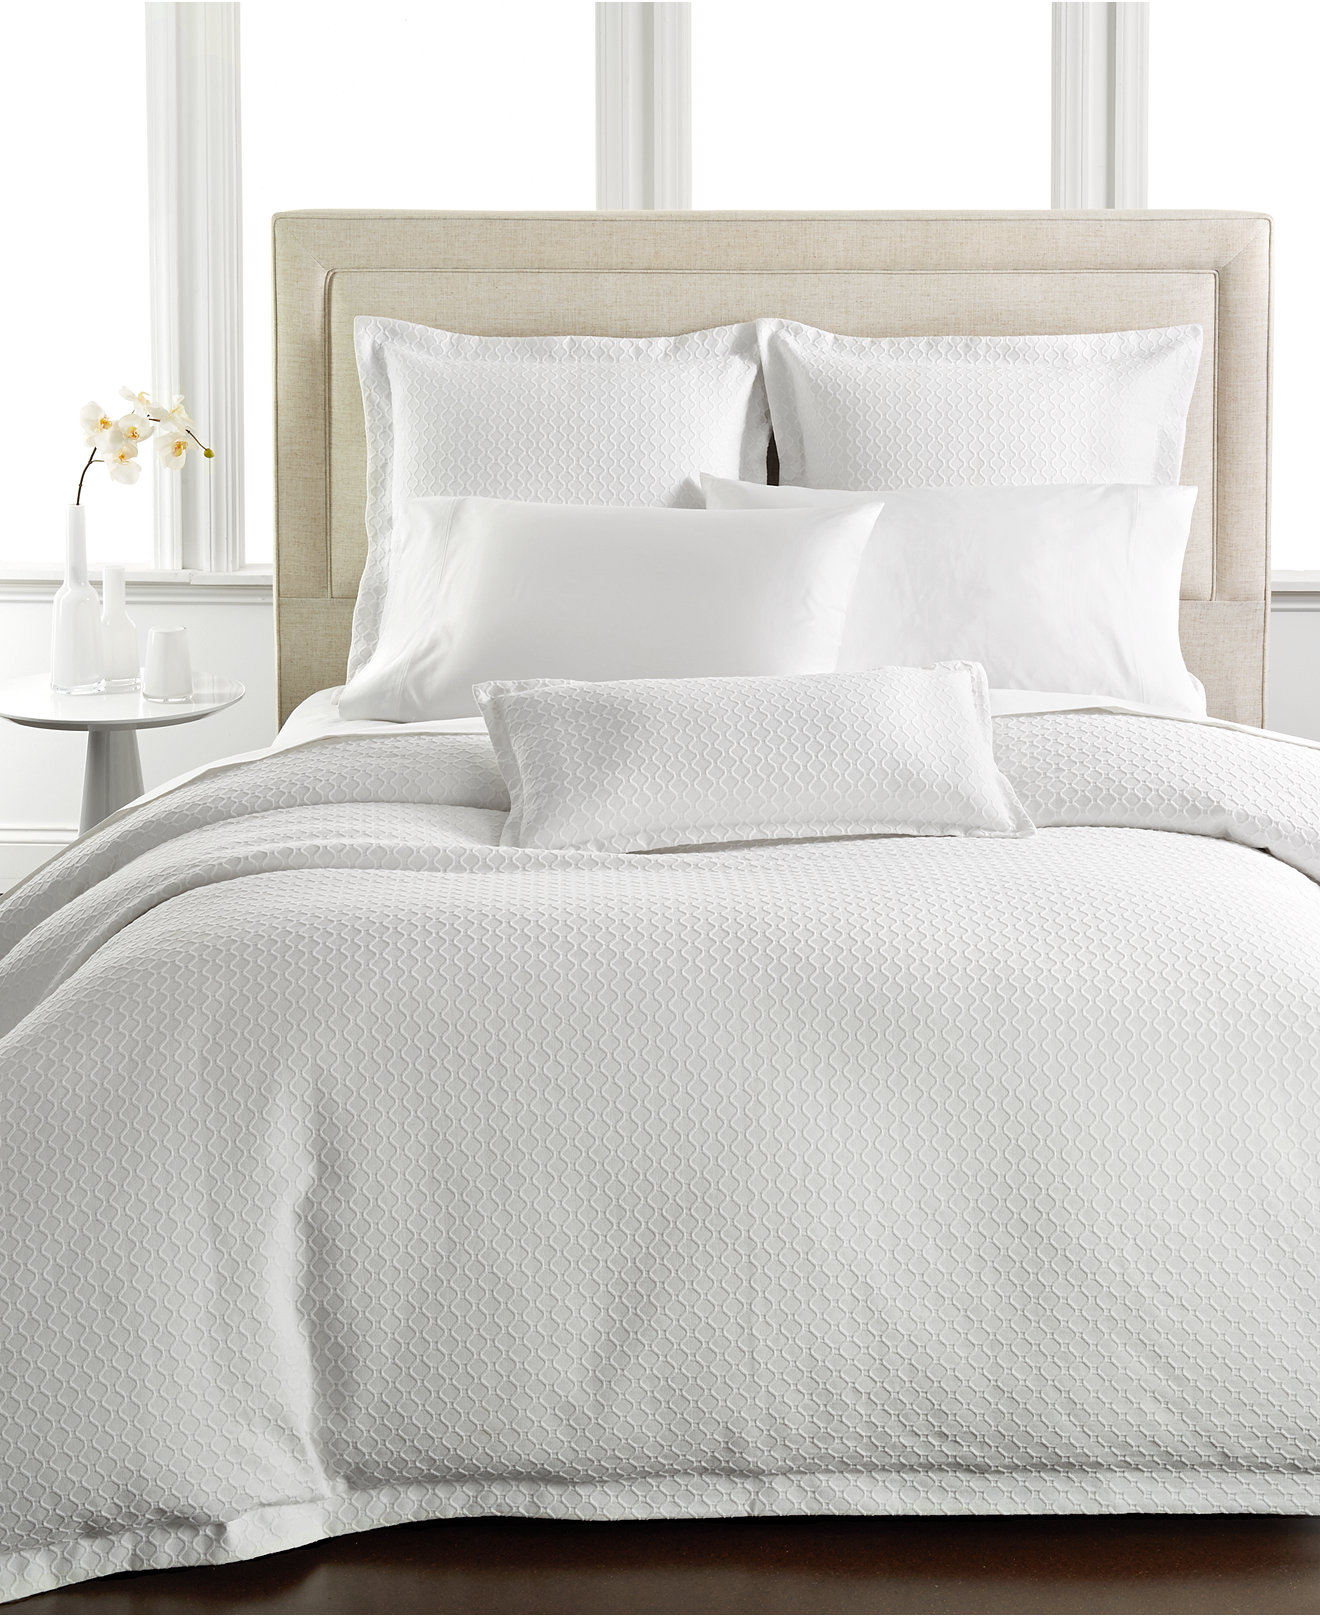 reviews duvet goose hydrosense consumer all season fluffy world feather the pacific european queen coast fill extra king made quilts best cover price reports usa down bedroom in pyrenees for comforter